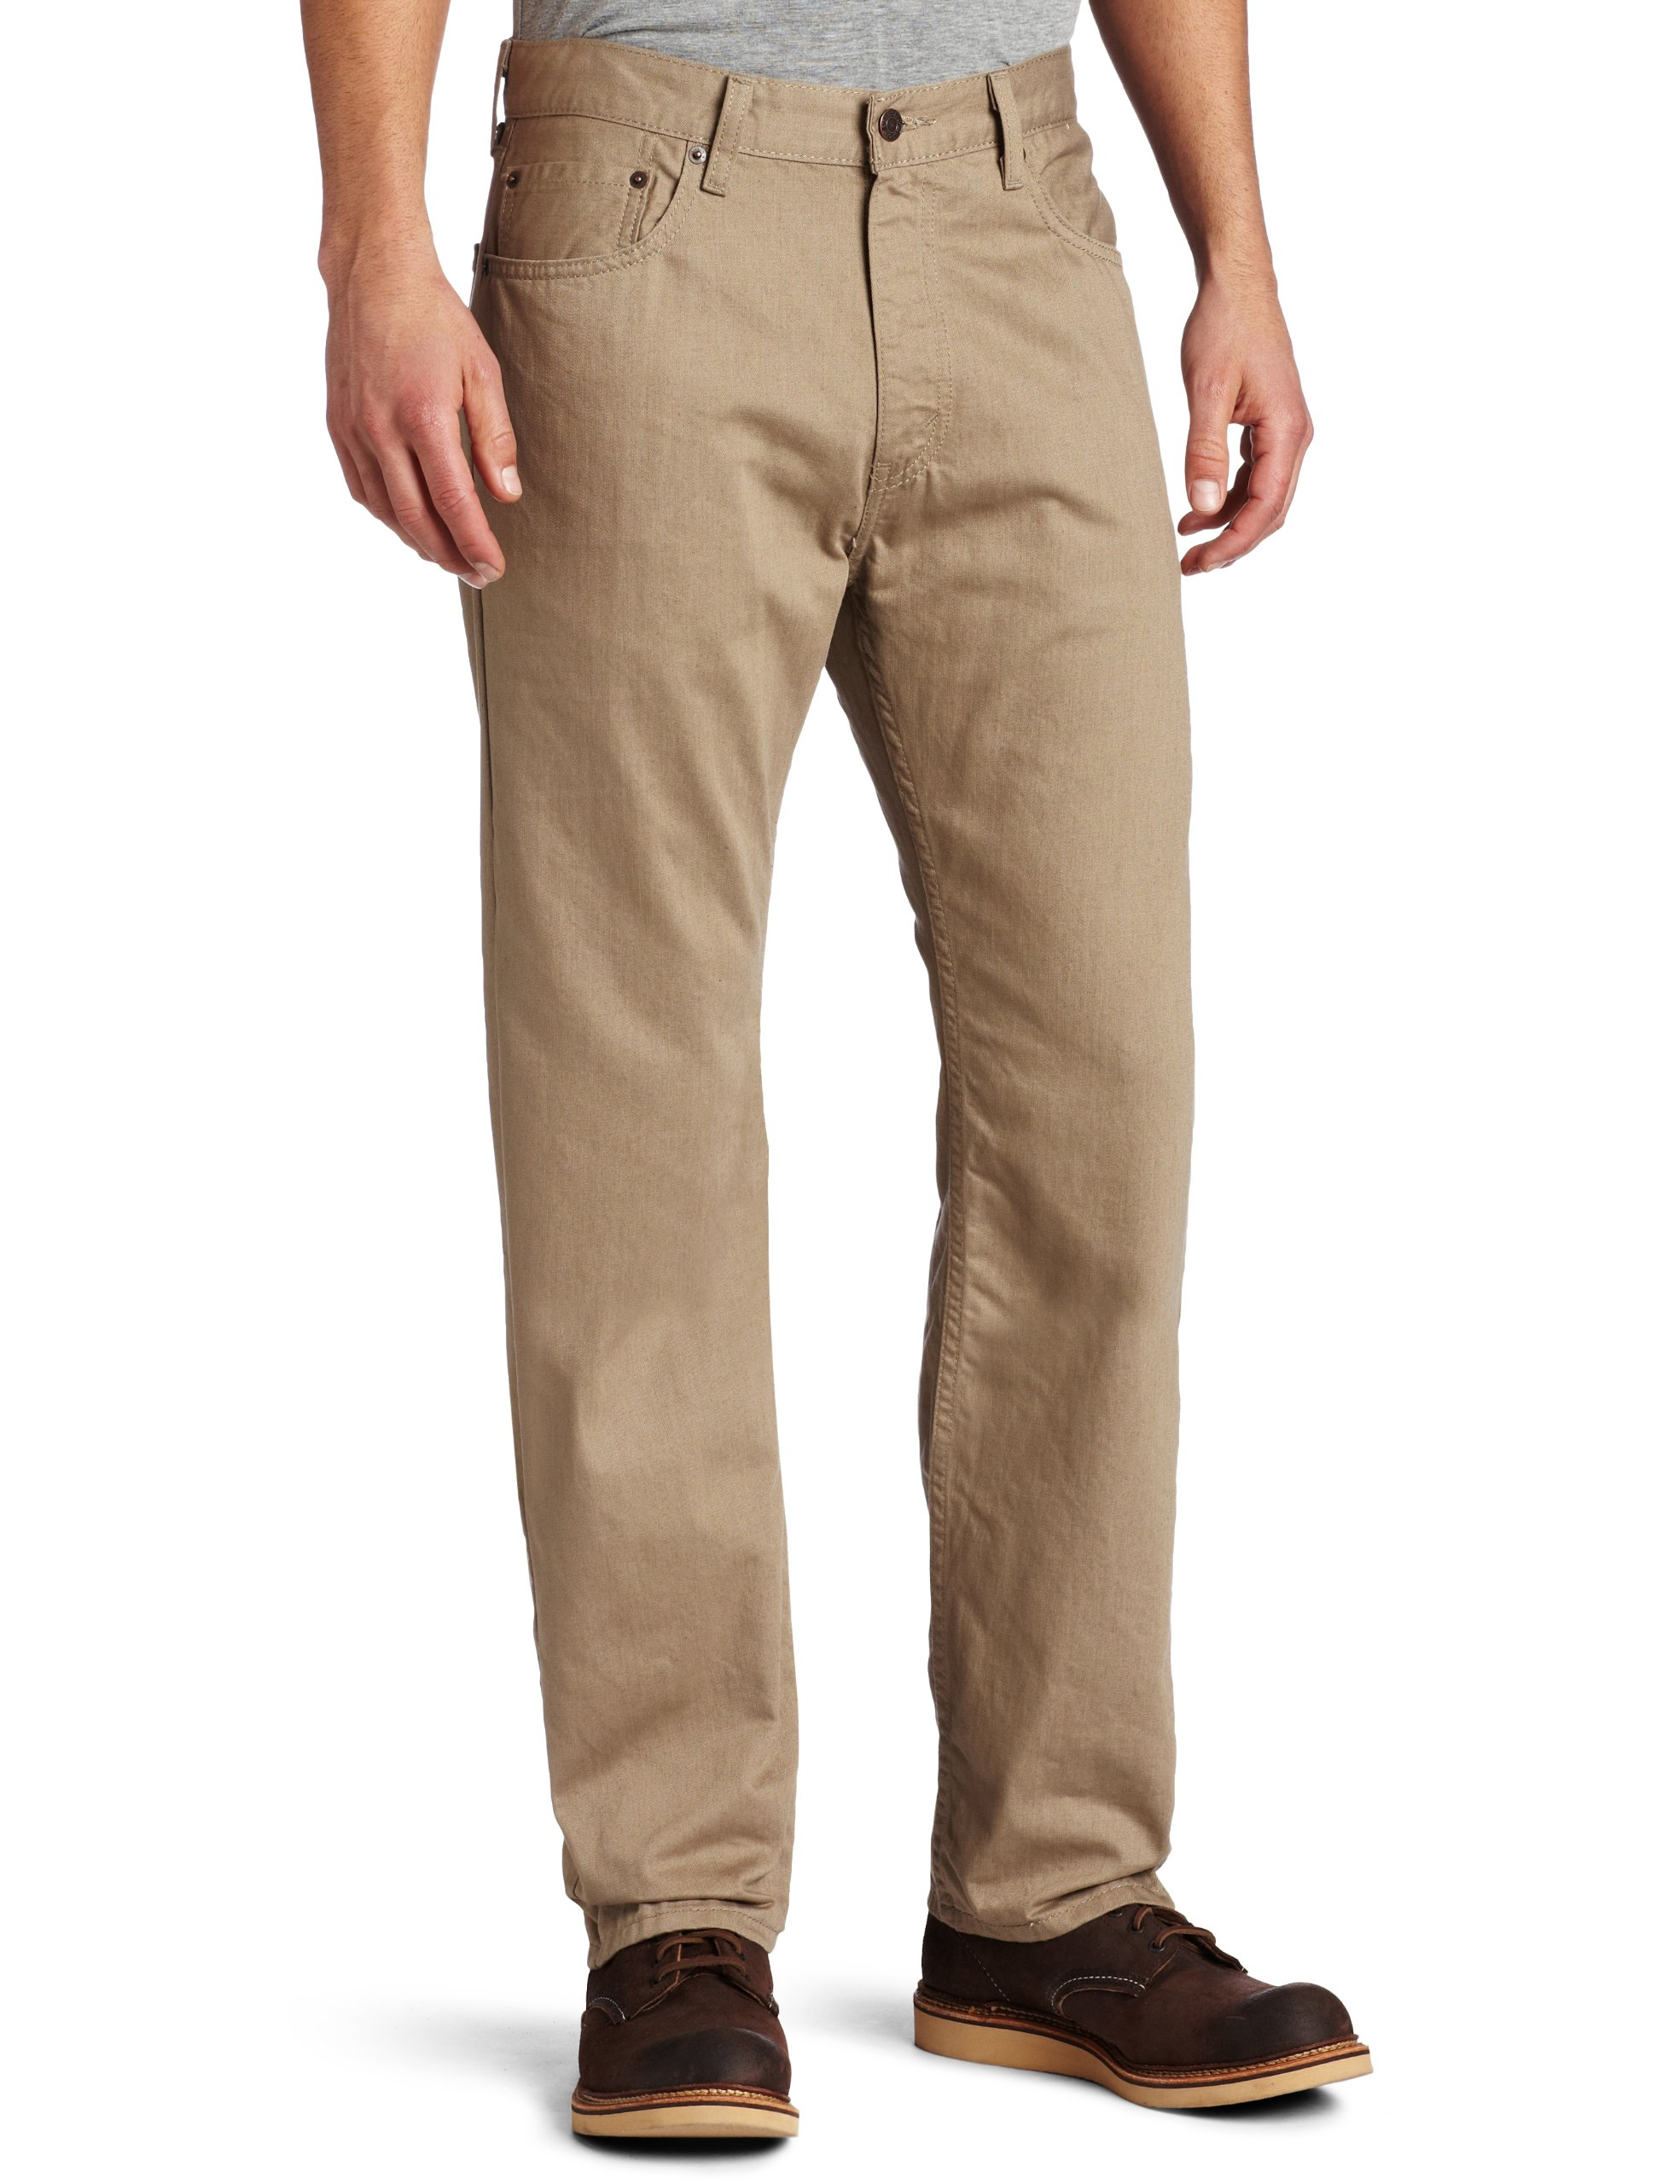 Levi's Men's 505 Regular Fit Twill Pant, Timberwolf, 36x32